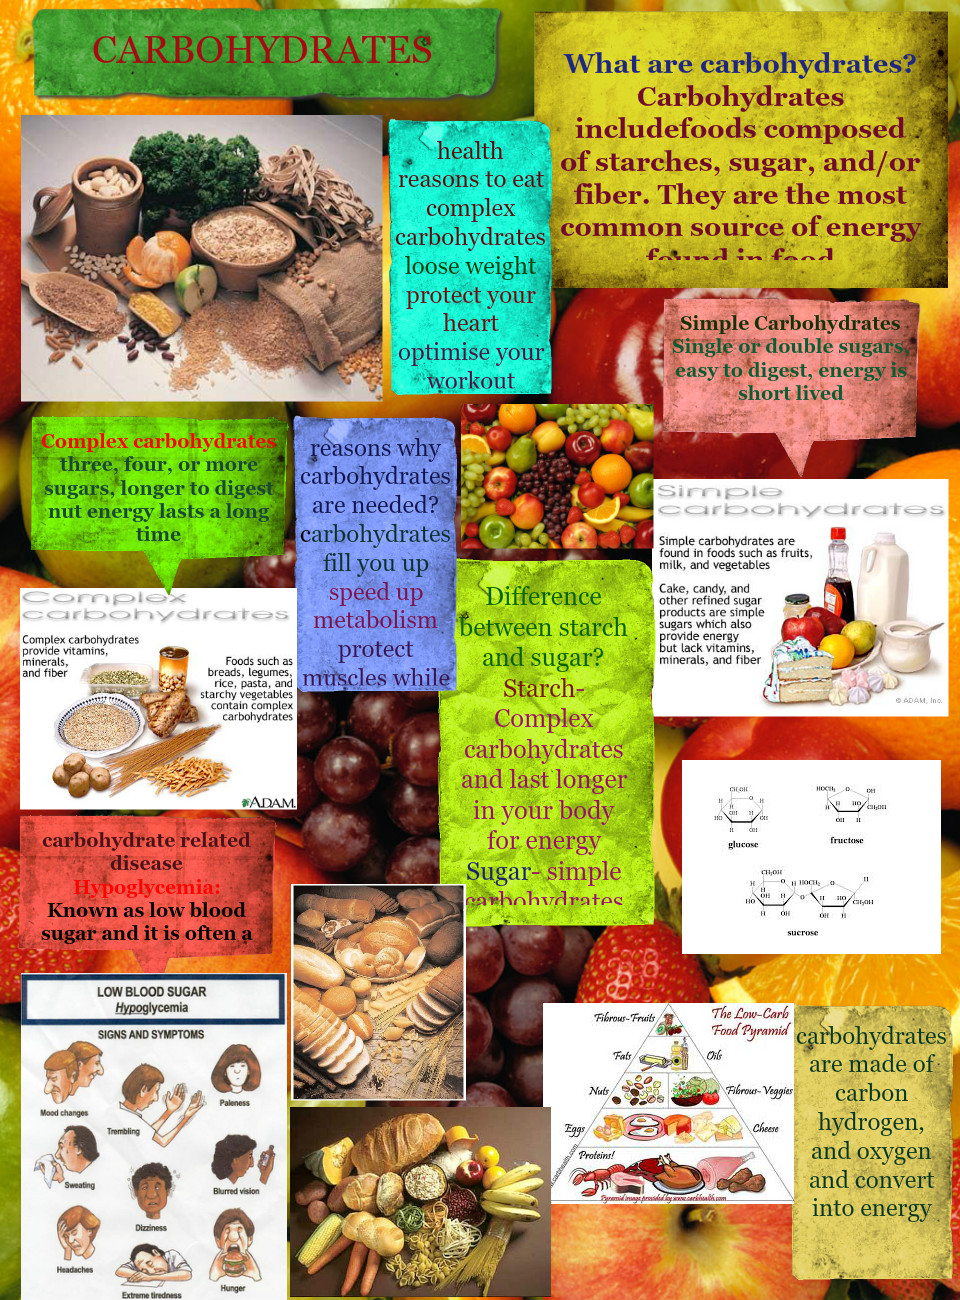 Carbohydrates: carbohydrates, chemistry, en, energy, fitness